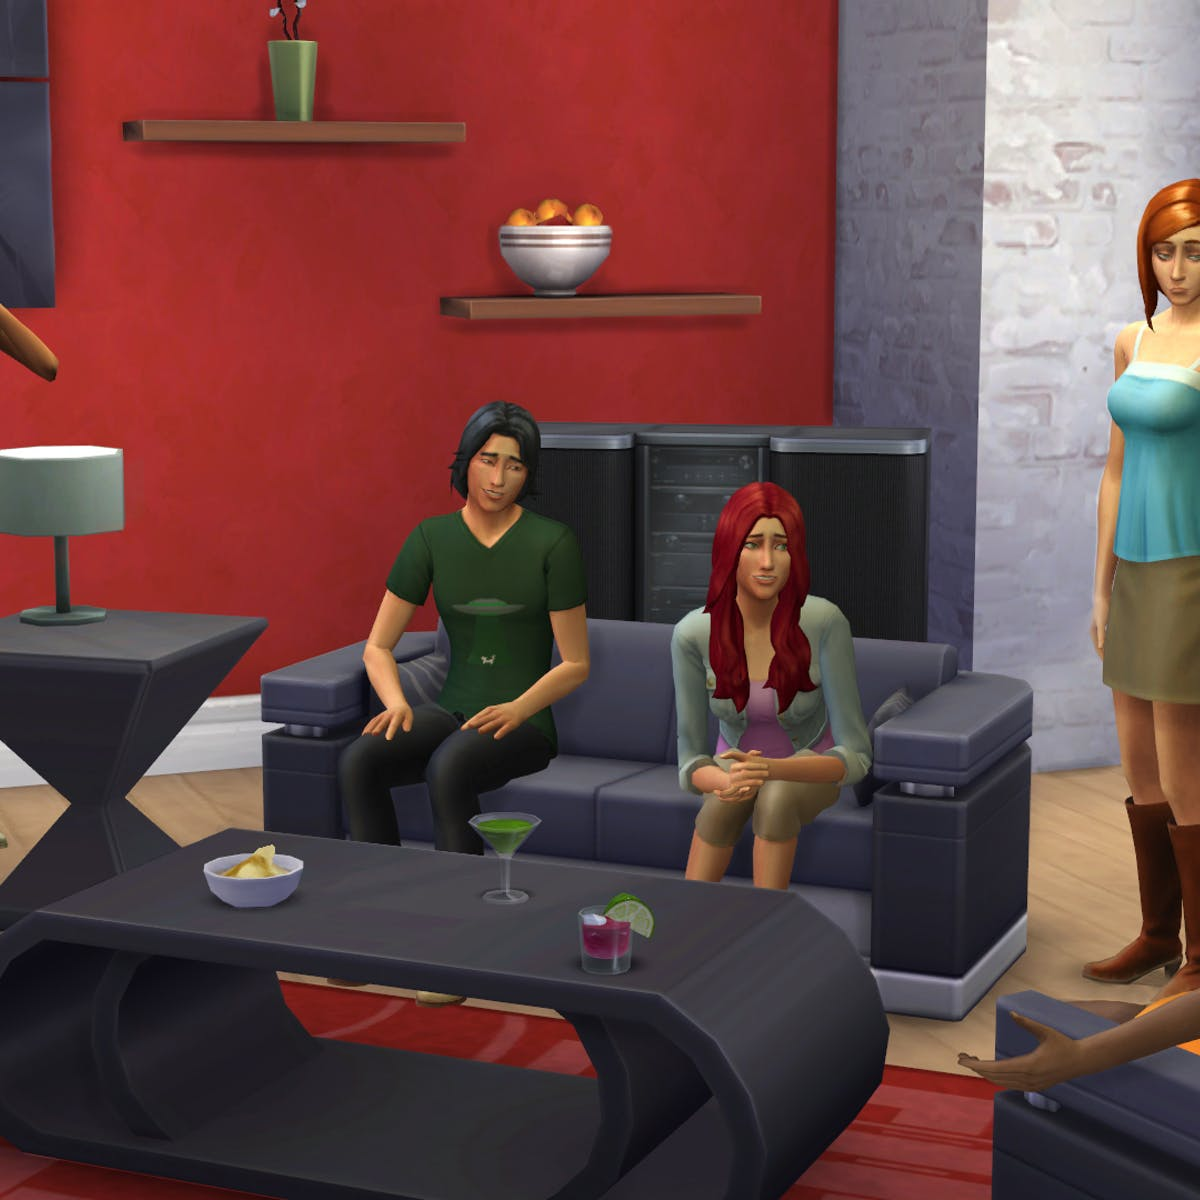 Trailblazing WooHoos: gay evolution in The Sims